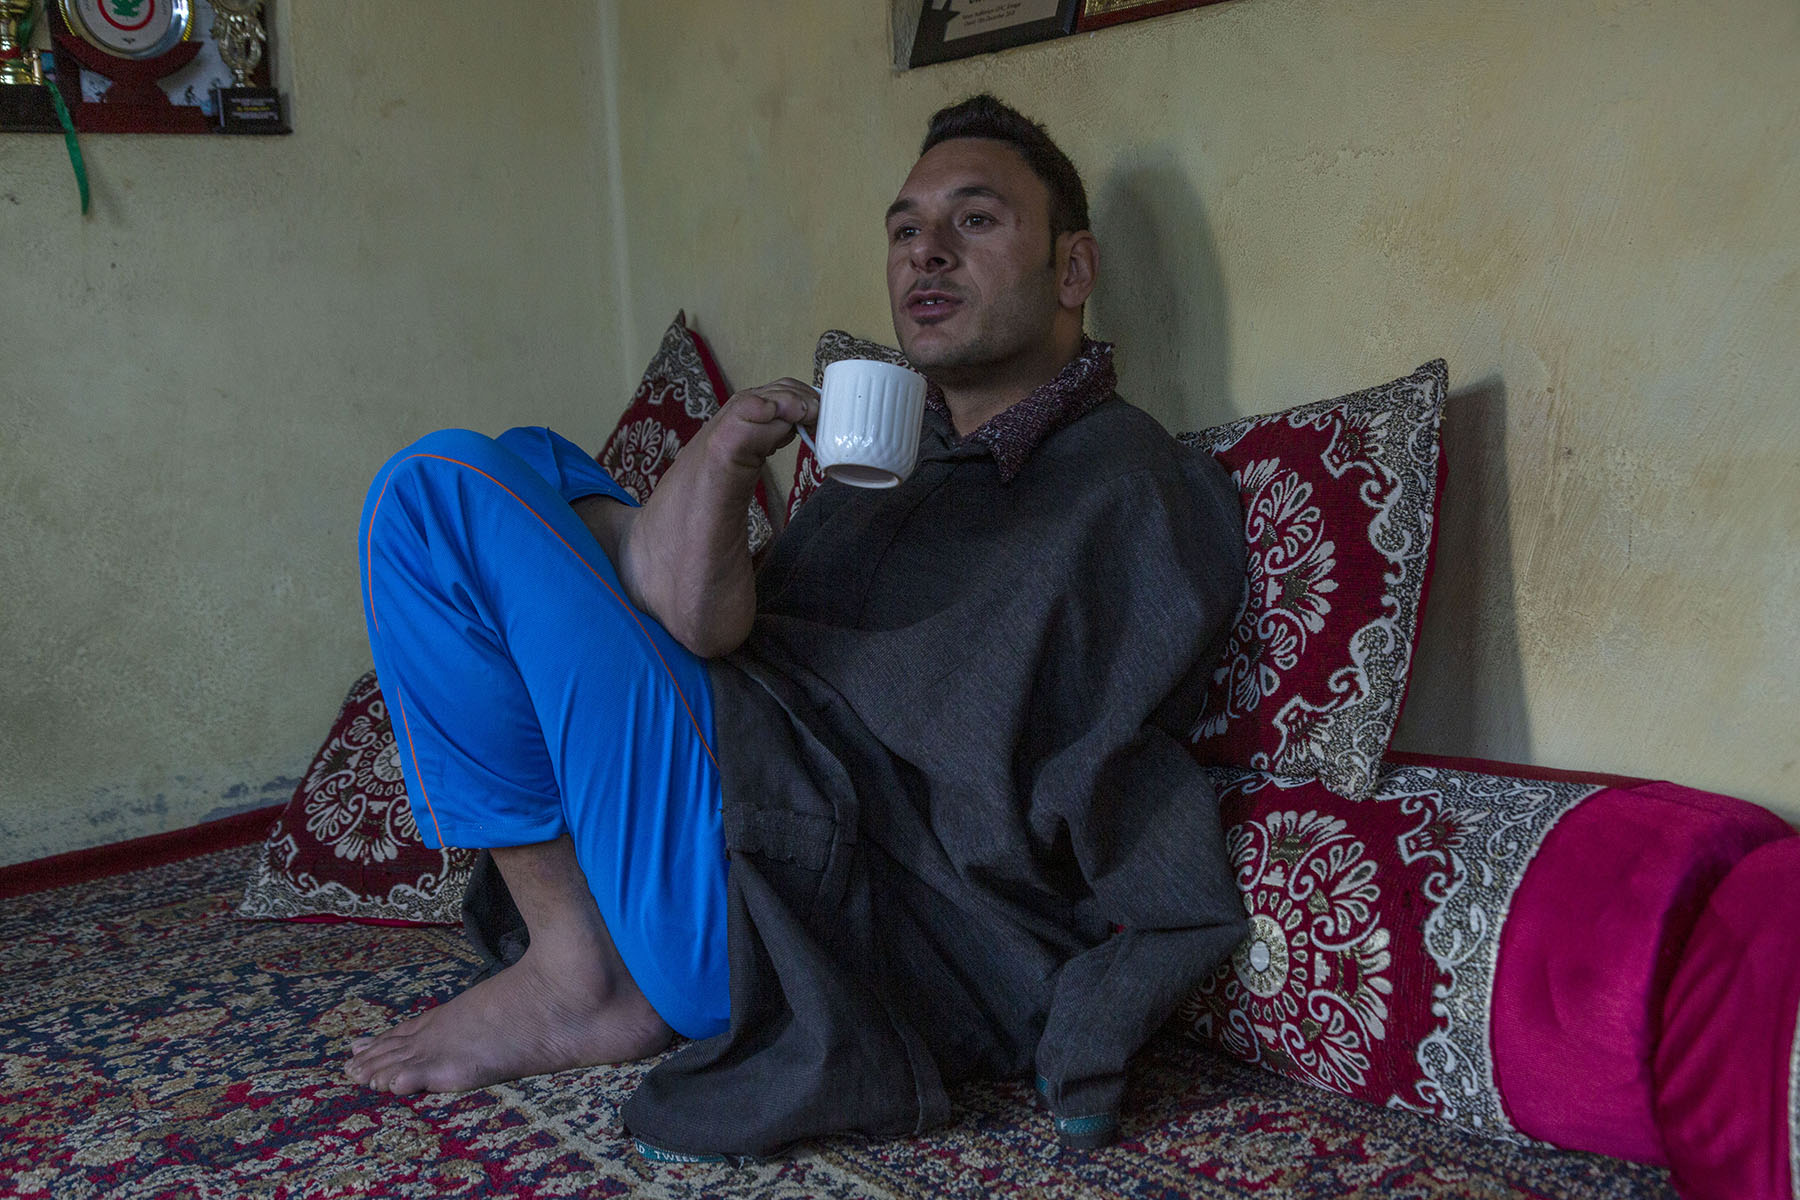 Amir sits on a rug in a room, leaning back against a bolster and cushions, holding a porcelain cup with his right foot. He wears a charcoal grey woollen pheran (Kashmiri gown) over blue pants. The rug and cushions have a similar red and grey floral pattern.